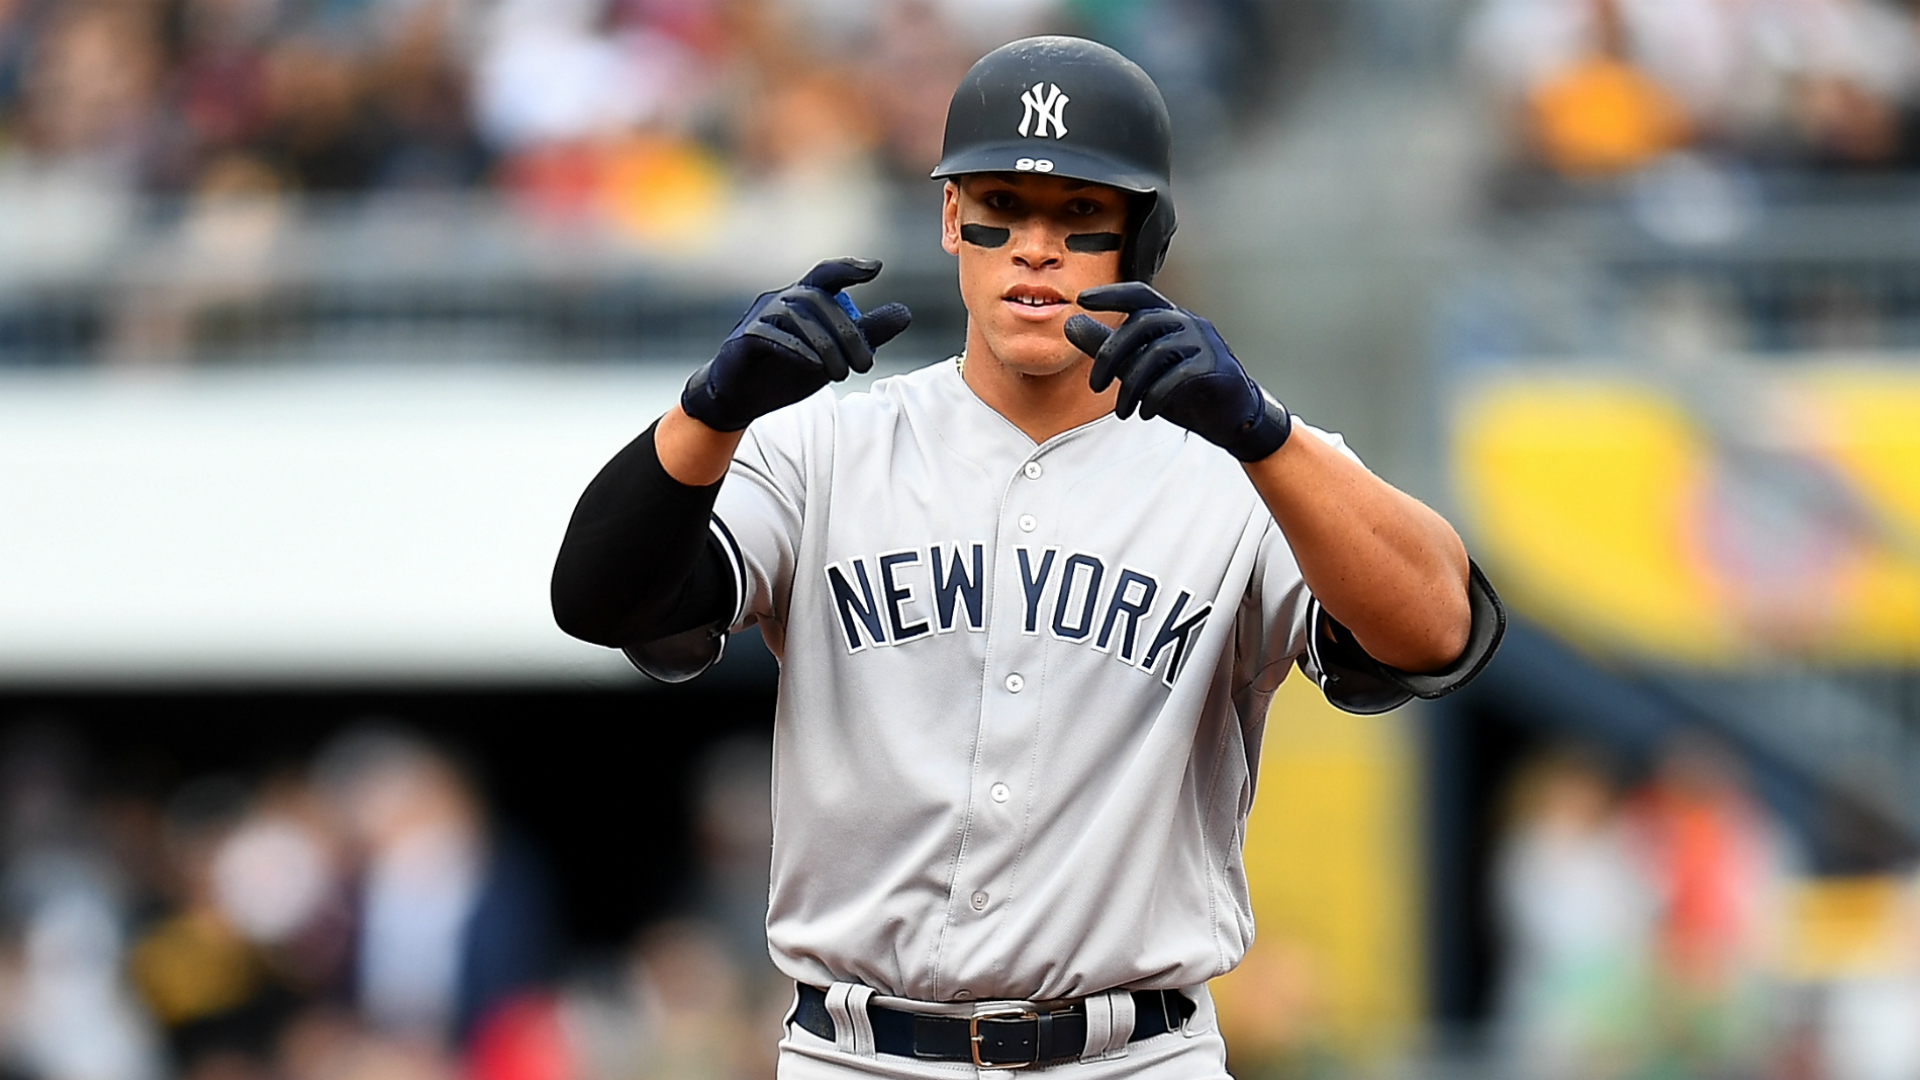 Aaron Judge Wallpaper Hd >> Joe Girardi said it: Yankees rookie Aaron Judge reminds of Derek Jeter | MLB | Sporting News